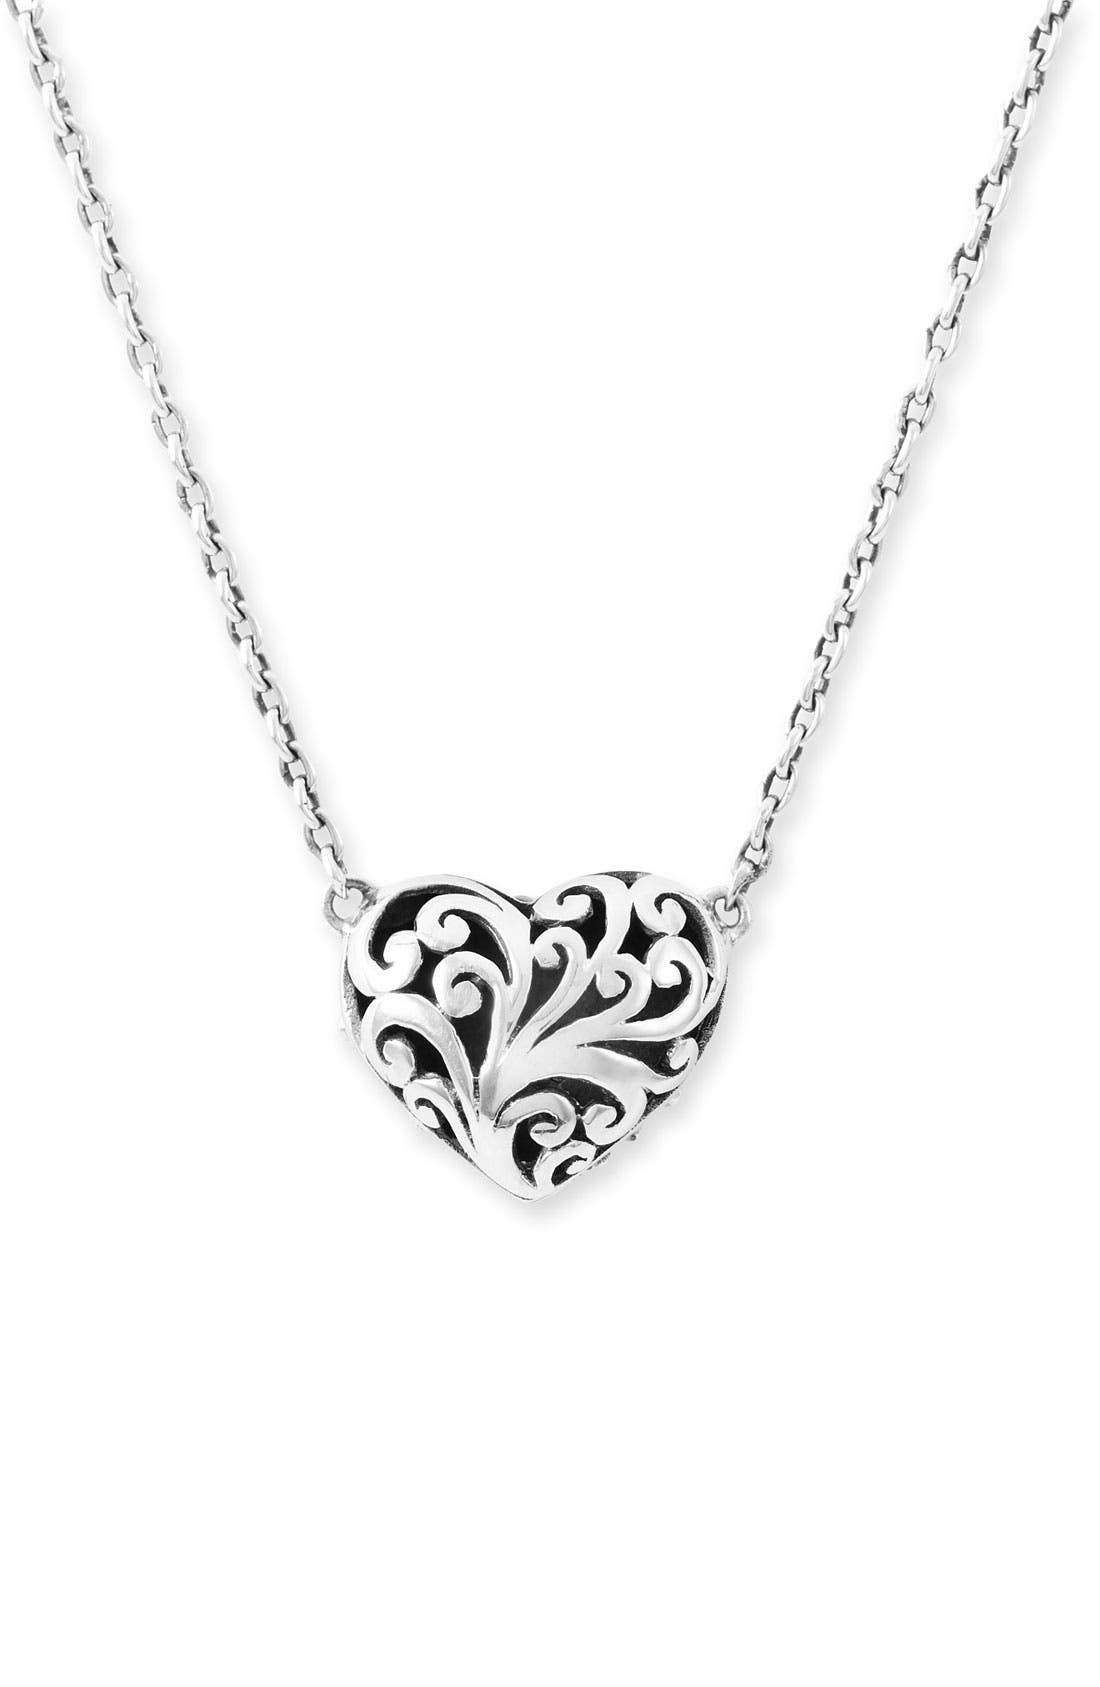 Alternate Image 1 Selected - Lois Hill Reversible Puff Heart Pendant Necklace